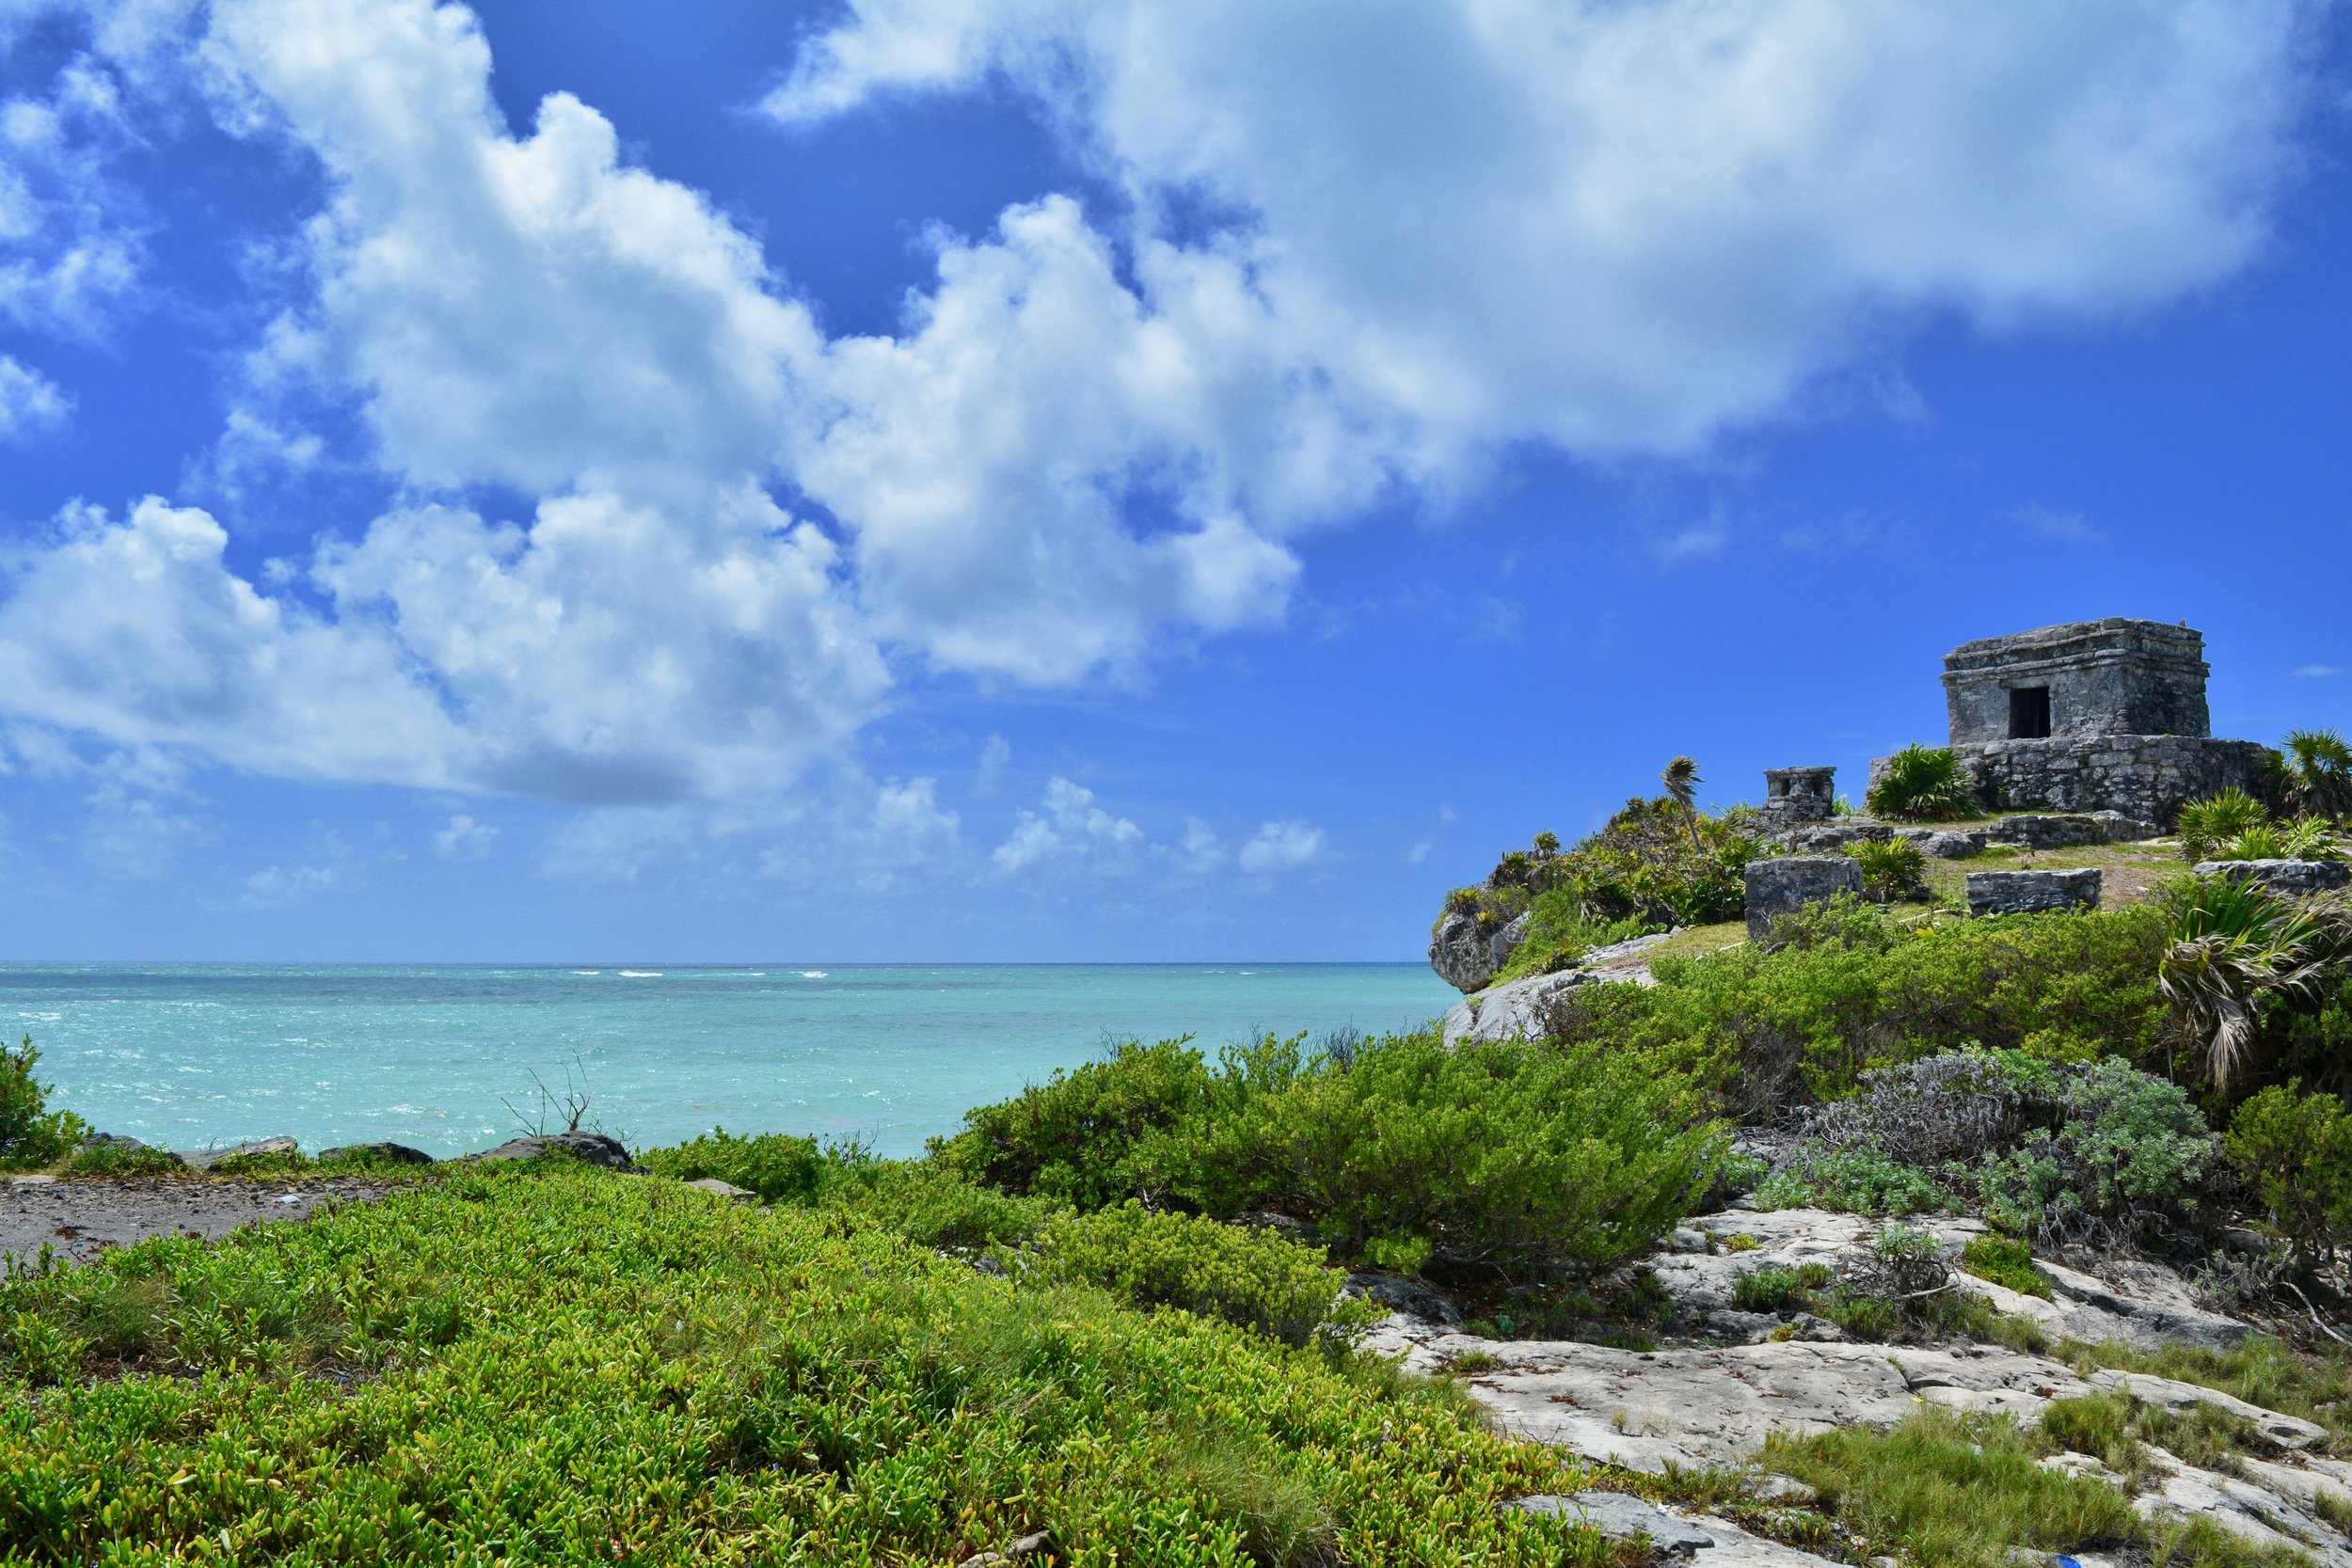 Tulum ruins overlooking the Caribbean